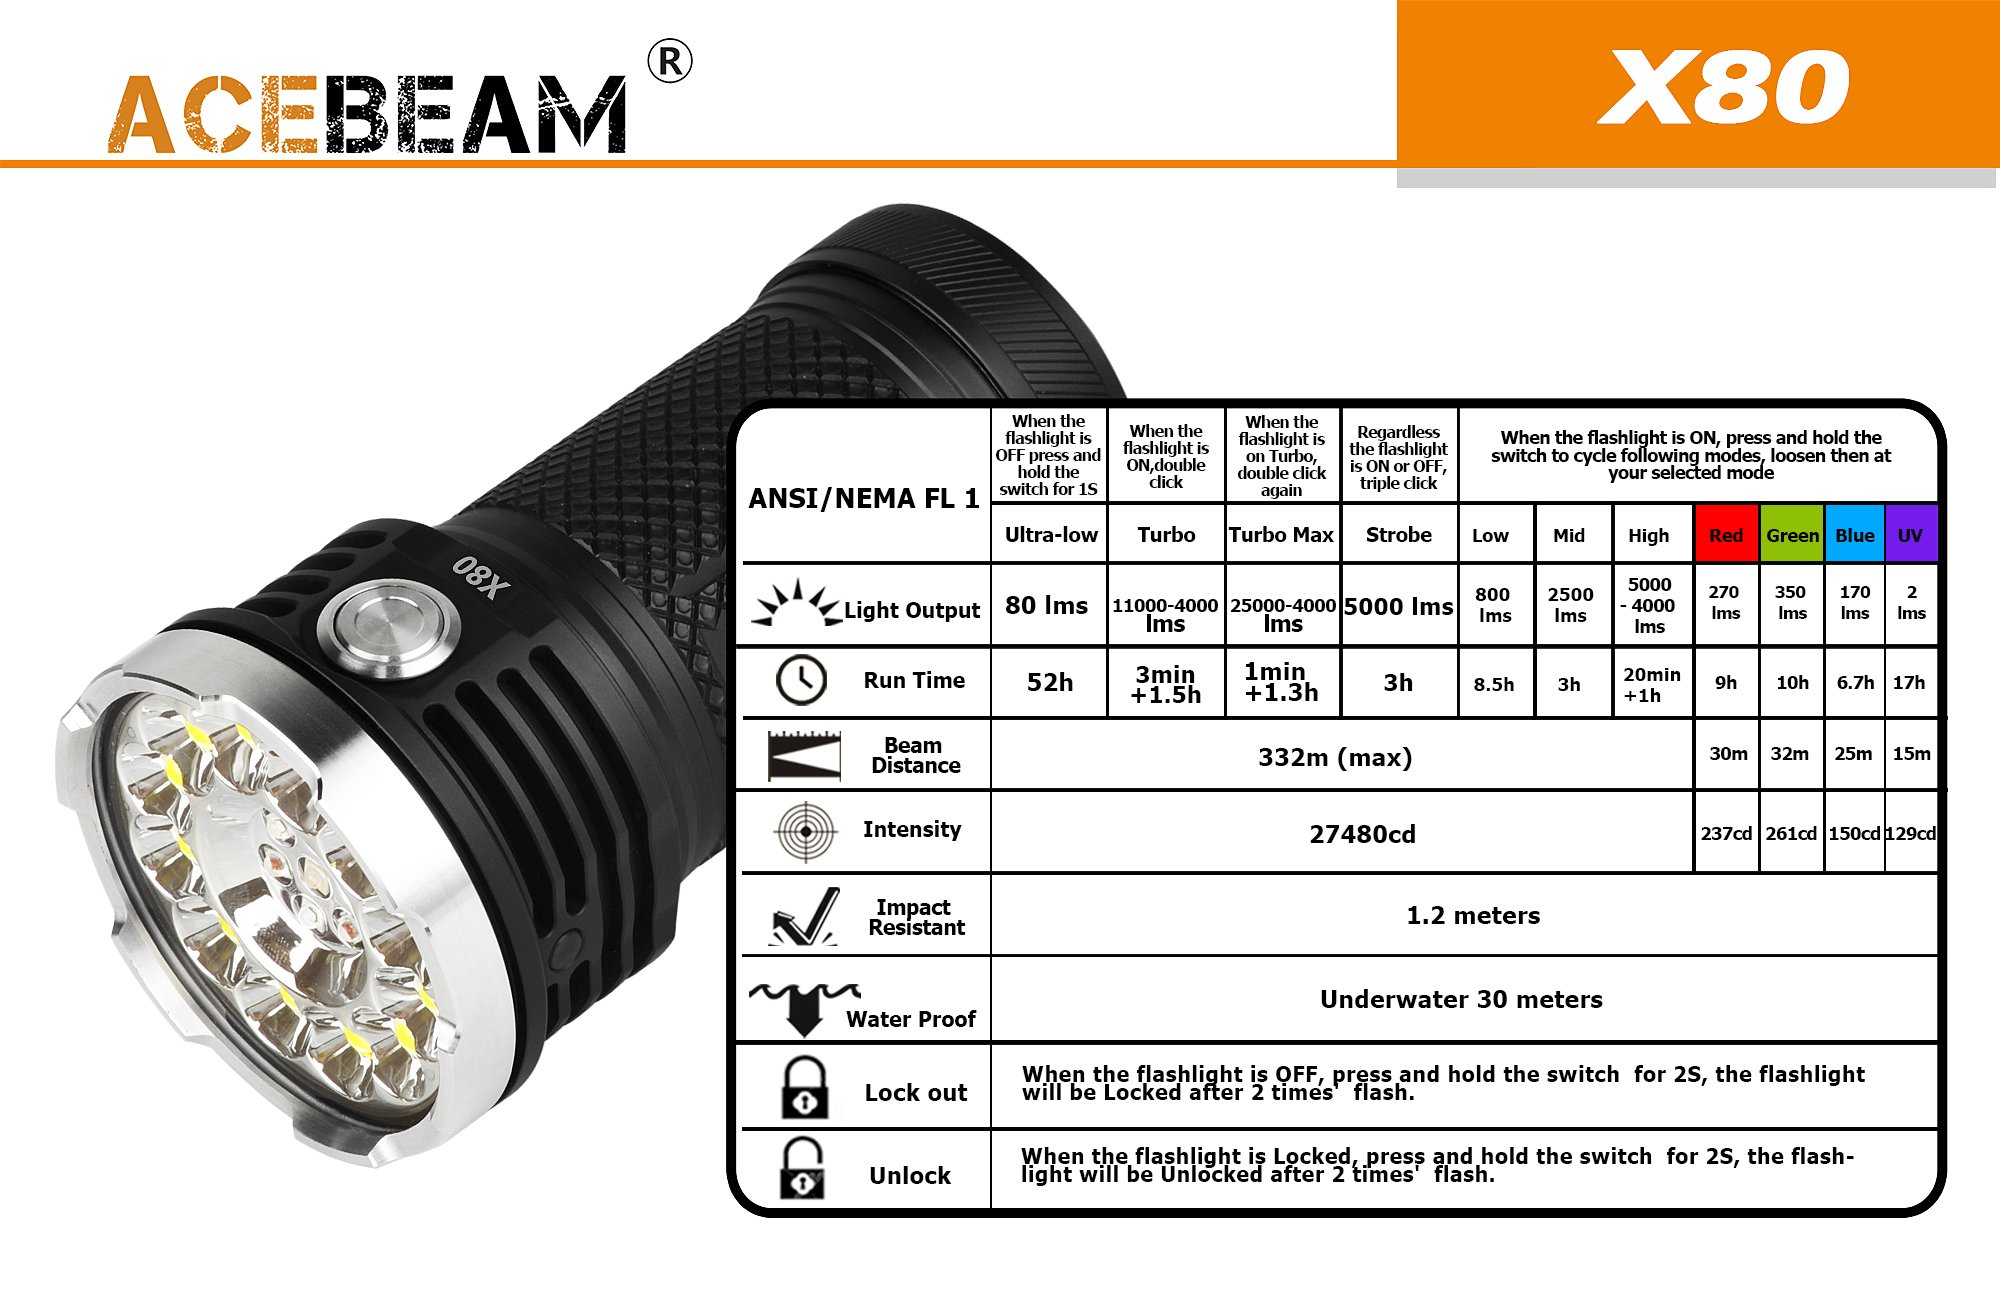 AceBeam X80 Flashlight 25000 Lumens 5-color Light Beam Flashlights Included Batteries by ACEBEAM (Image #6)